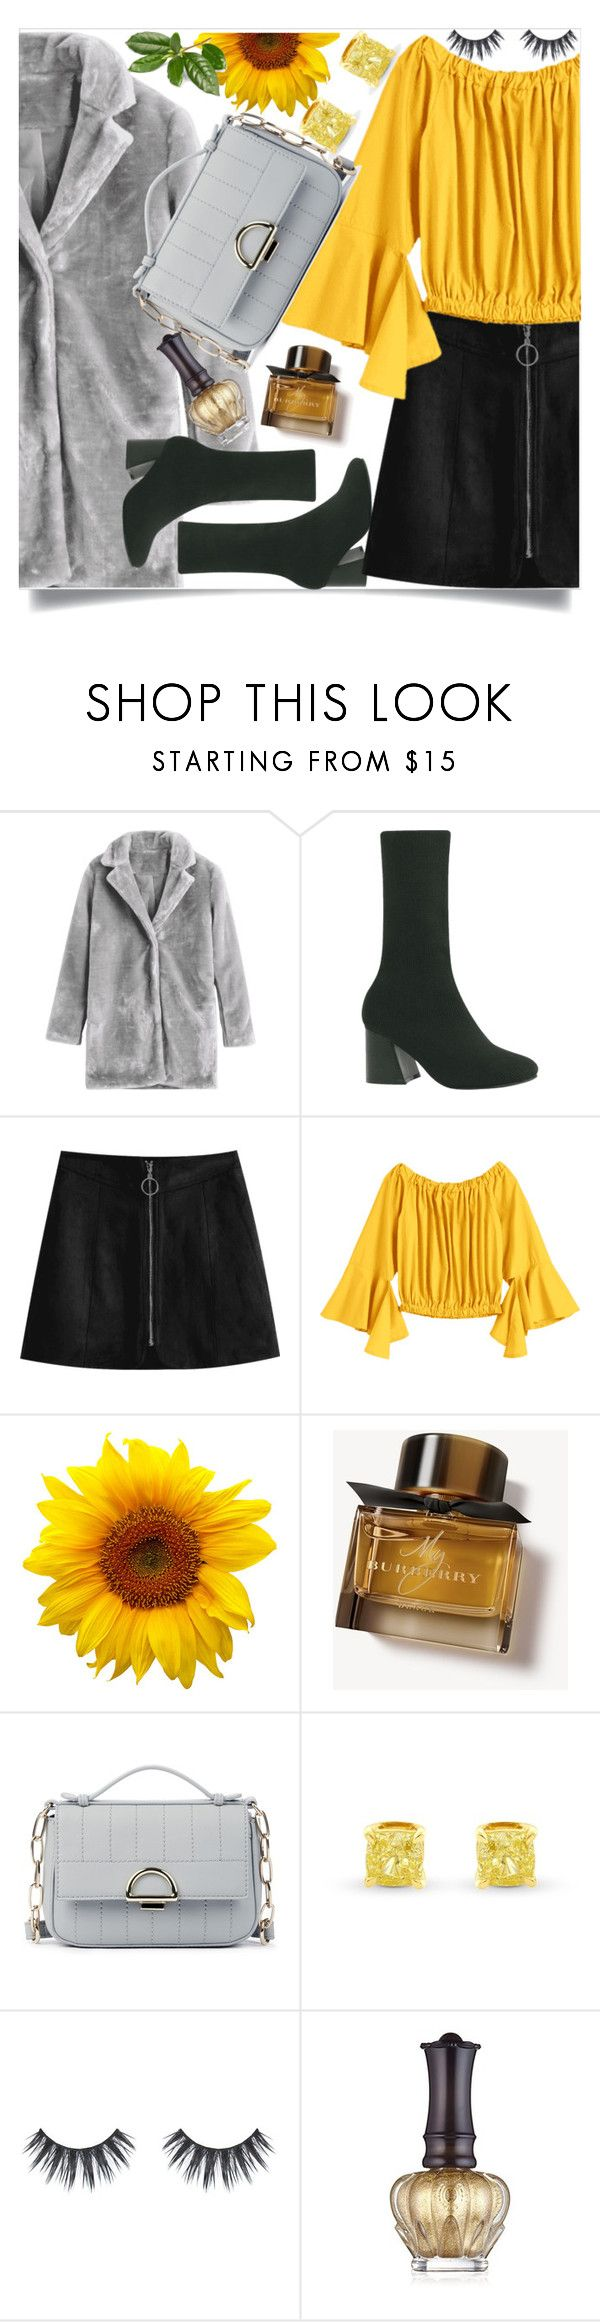 """""""Yellow asymmetrical Blouse"""" by mell-2405 ❤ liked on Polyvore featuring Burberry, Sole Society, Anna Sui, yellow, grey, blouse, coat and asymmetrical"""